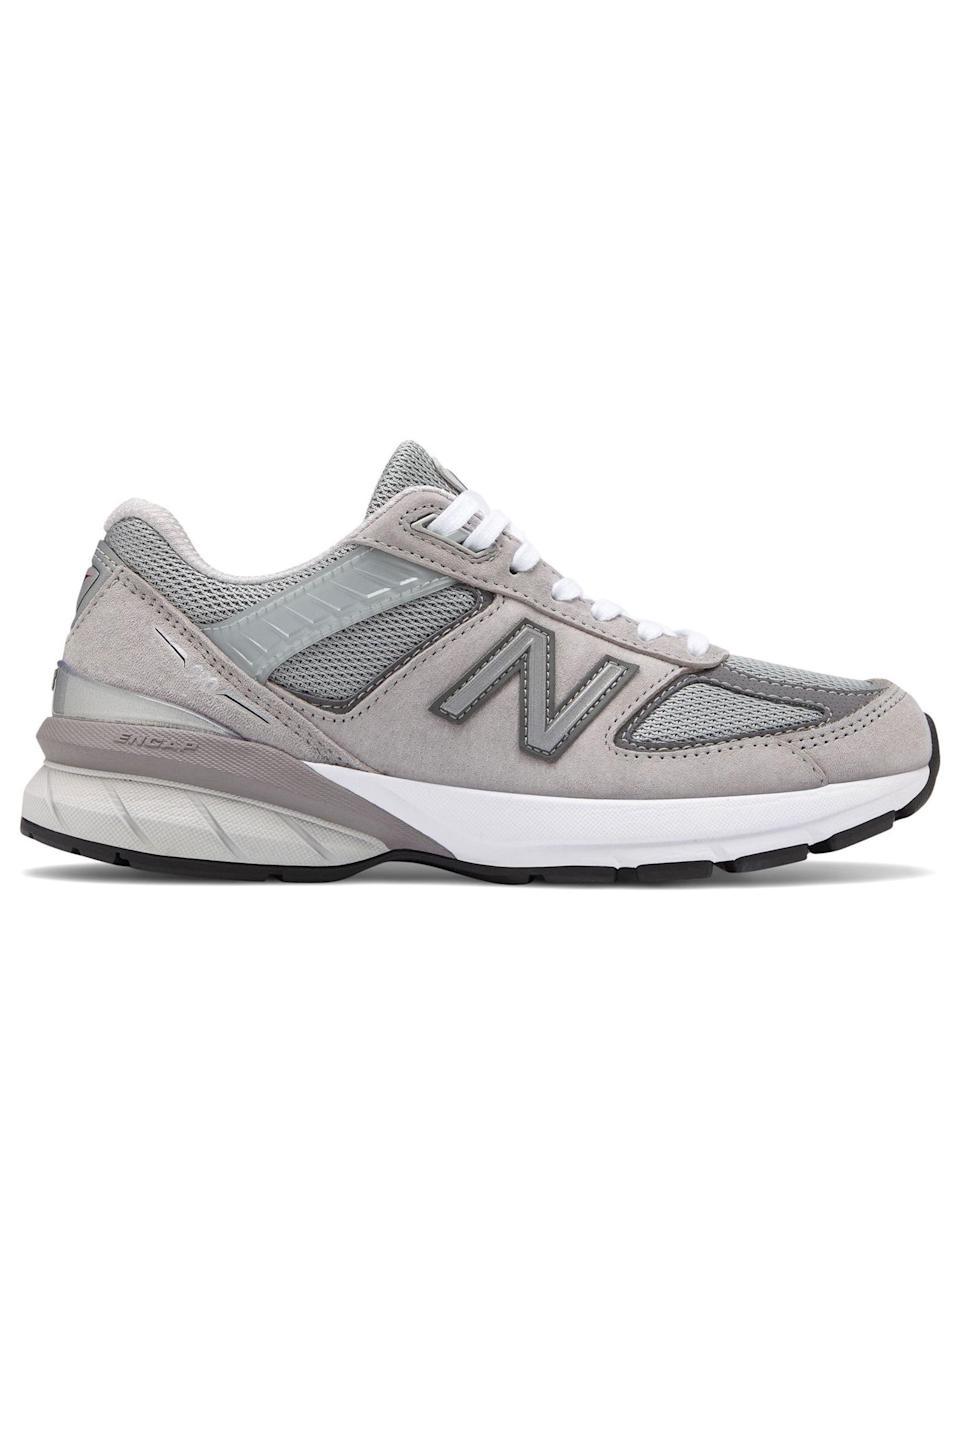 """<p><strong>New Balance</strong></p><p>amazon.com</p><p><strong>$174.95</strong></p><p><a href=""""https://www.amazon.com/dp/B0791VNMLJ?tag=syn-yahoo-20&ascsubtag=%5Bartid%7C10051.g.13053688%5Bsrc%7Cyahoo-us"""" rel=""""nofollow noopener"""" target=""""_blank"""" data-ylk=""""slk:Shop Now"""" class=""""link rapid-noclick-resp"""">Shop Now</a></p><p>Few dad sneakers are more iconic or podiatrist-loved than New Balance's 990 V5 sneaker. (Yes, this is the sneaker you've been seeing <a href=""""https://www.elle.com/fashion/shopping/a32333620/isolation-new-balance-sneakers/"""" rel=""""nofollow noopener"""" target=""""_blank"""" data-ylk=""""slk:all over Instagram since quarantine"""" class=""""link rapid-noclick-resp"""">all over Instagram since quarantine</a>.) Zoe Kravitz, Kaia Gerber and Rosie Huntington-Whitely are just a few of the celebs who've been photographed by the 'paps wearing the chunky anti-It shoe this year. </p>"""